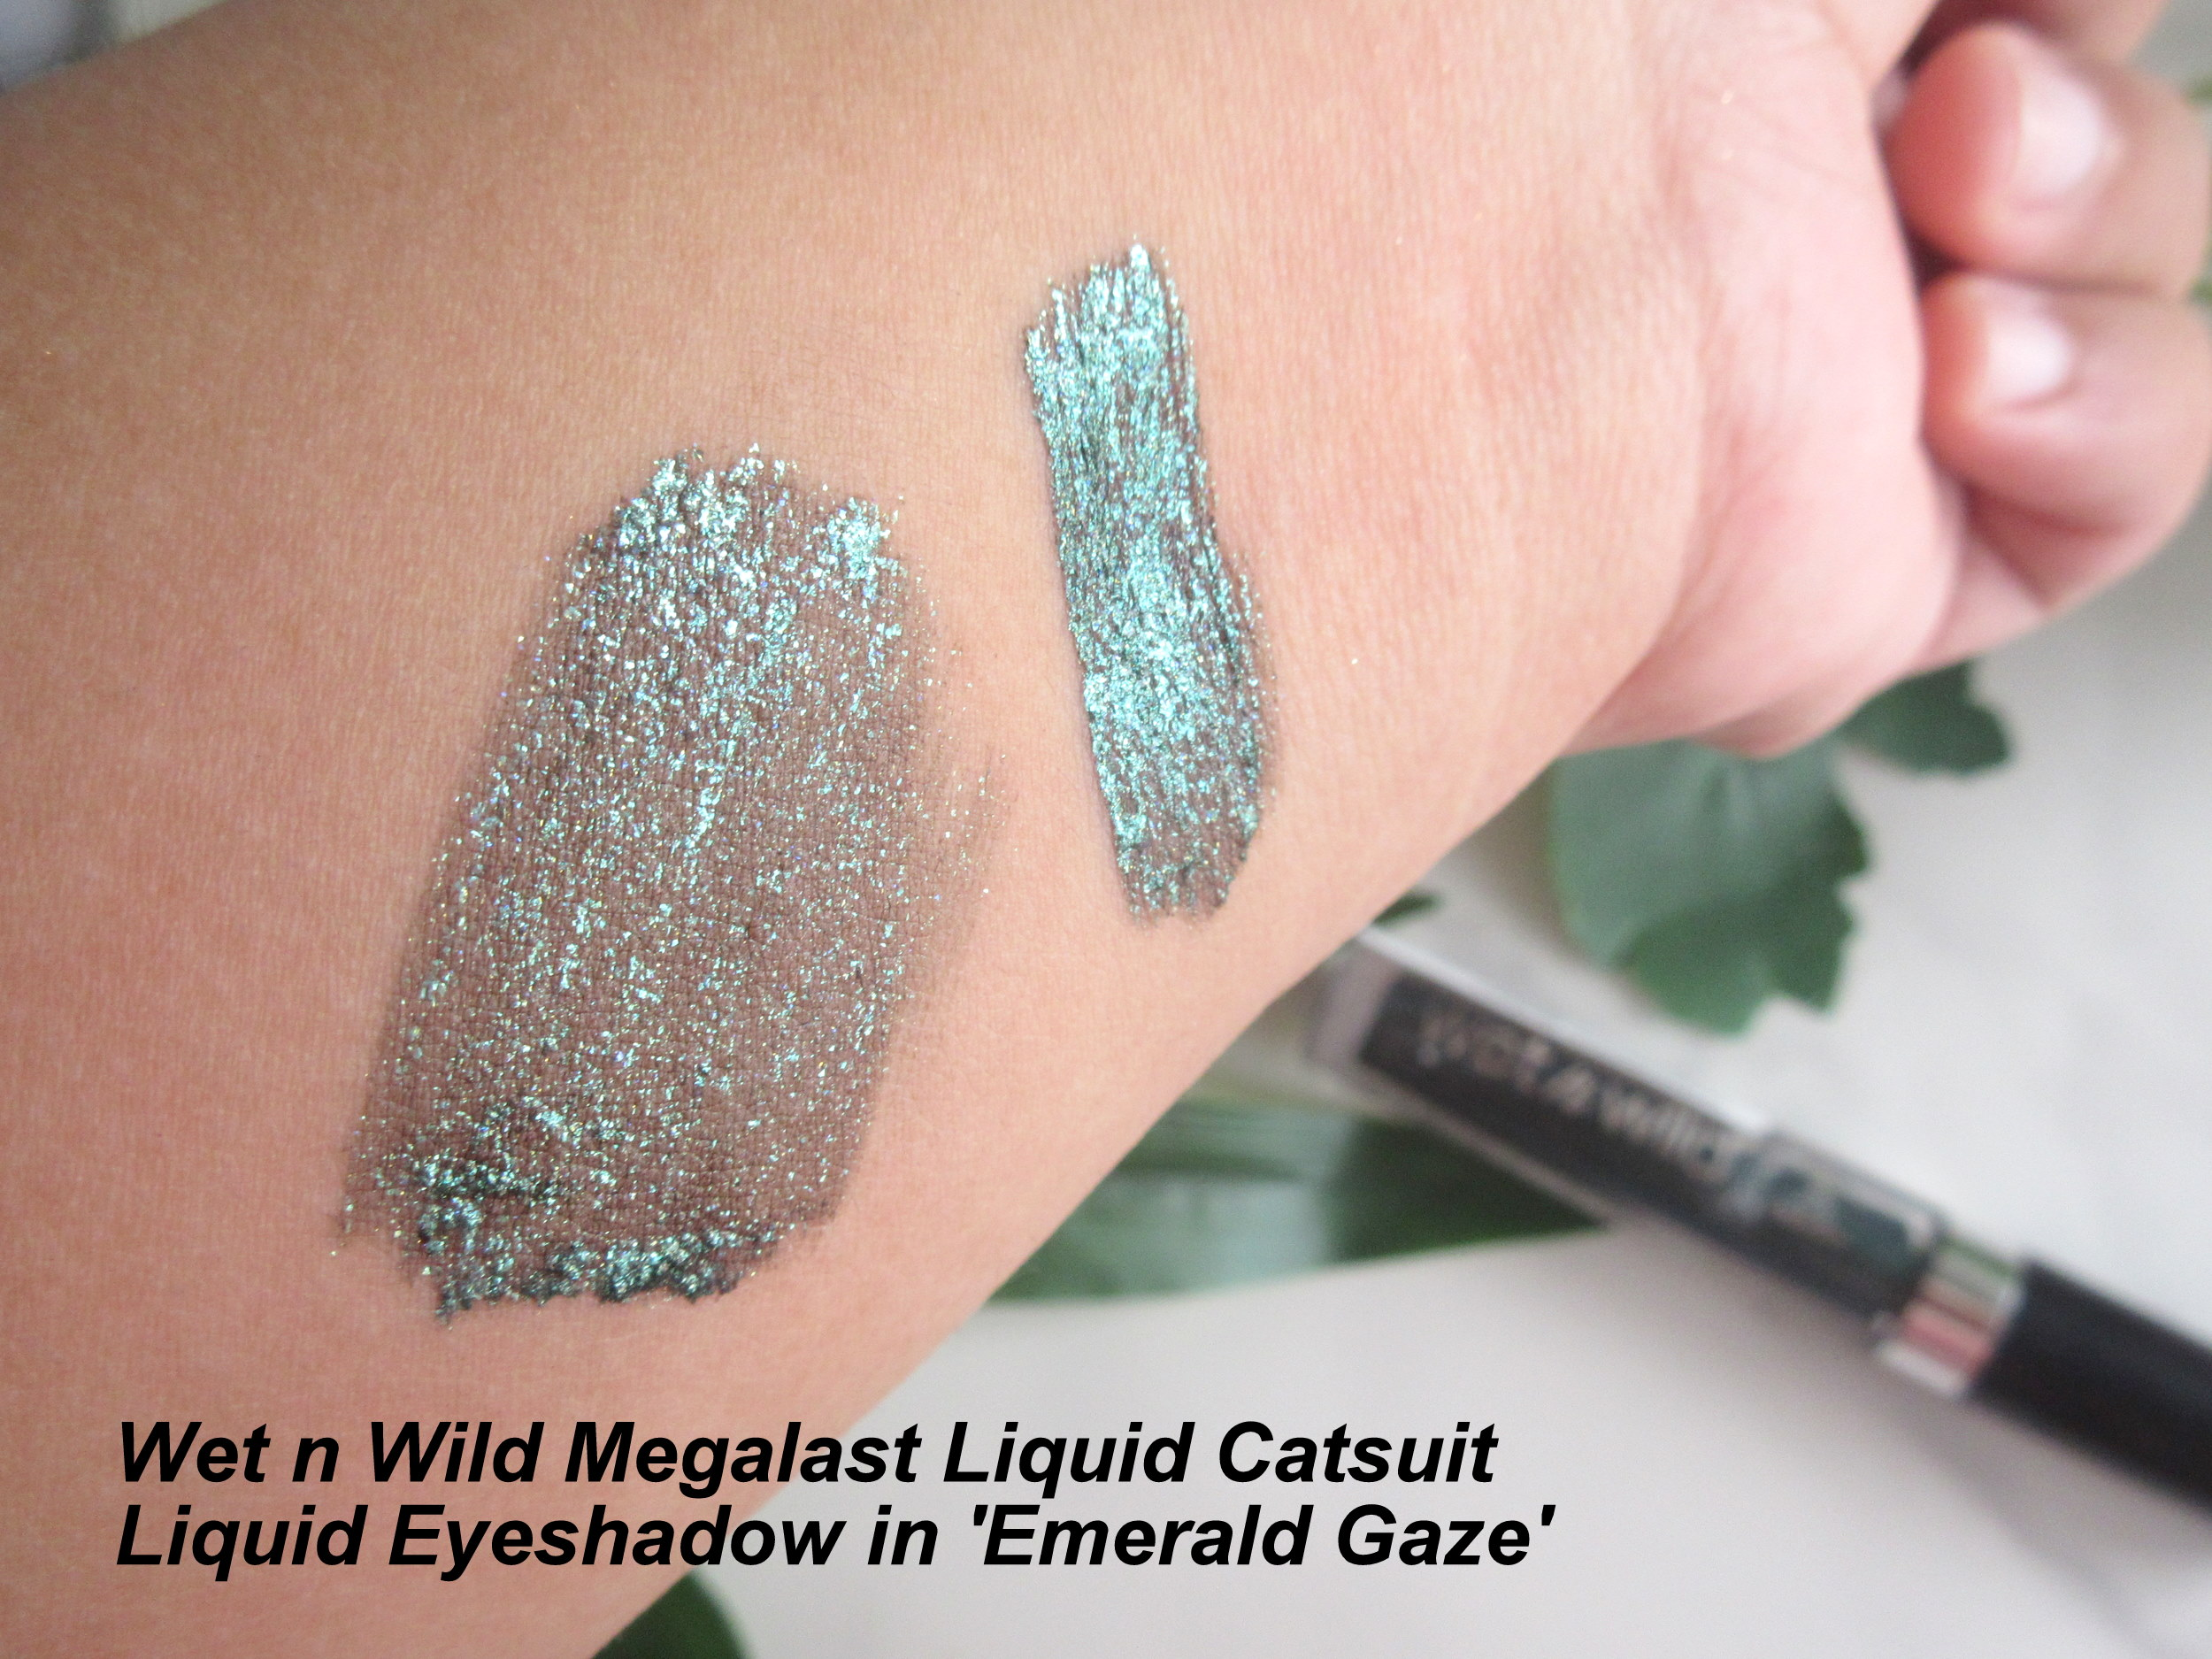 wet n wild megalast liquid catsuit liquid eyeshadow, wet n wild liquid catsuit liquid eyeshadow emerald gaze